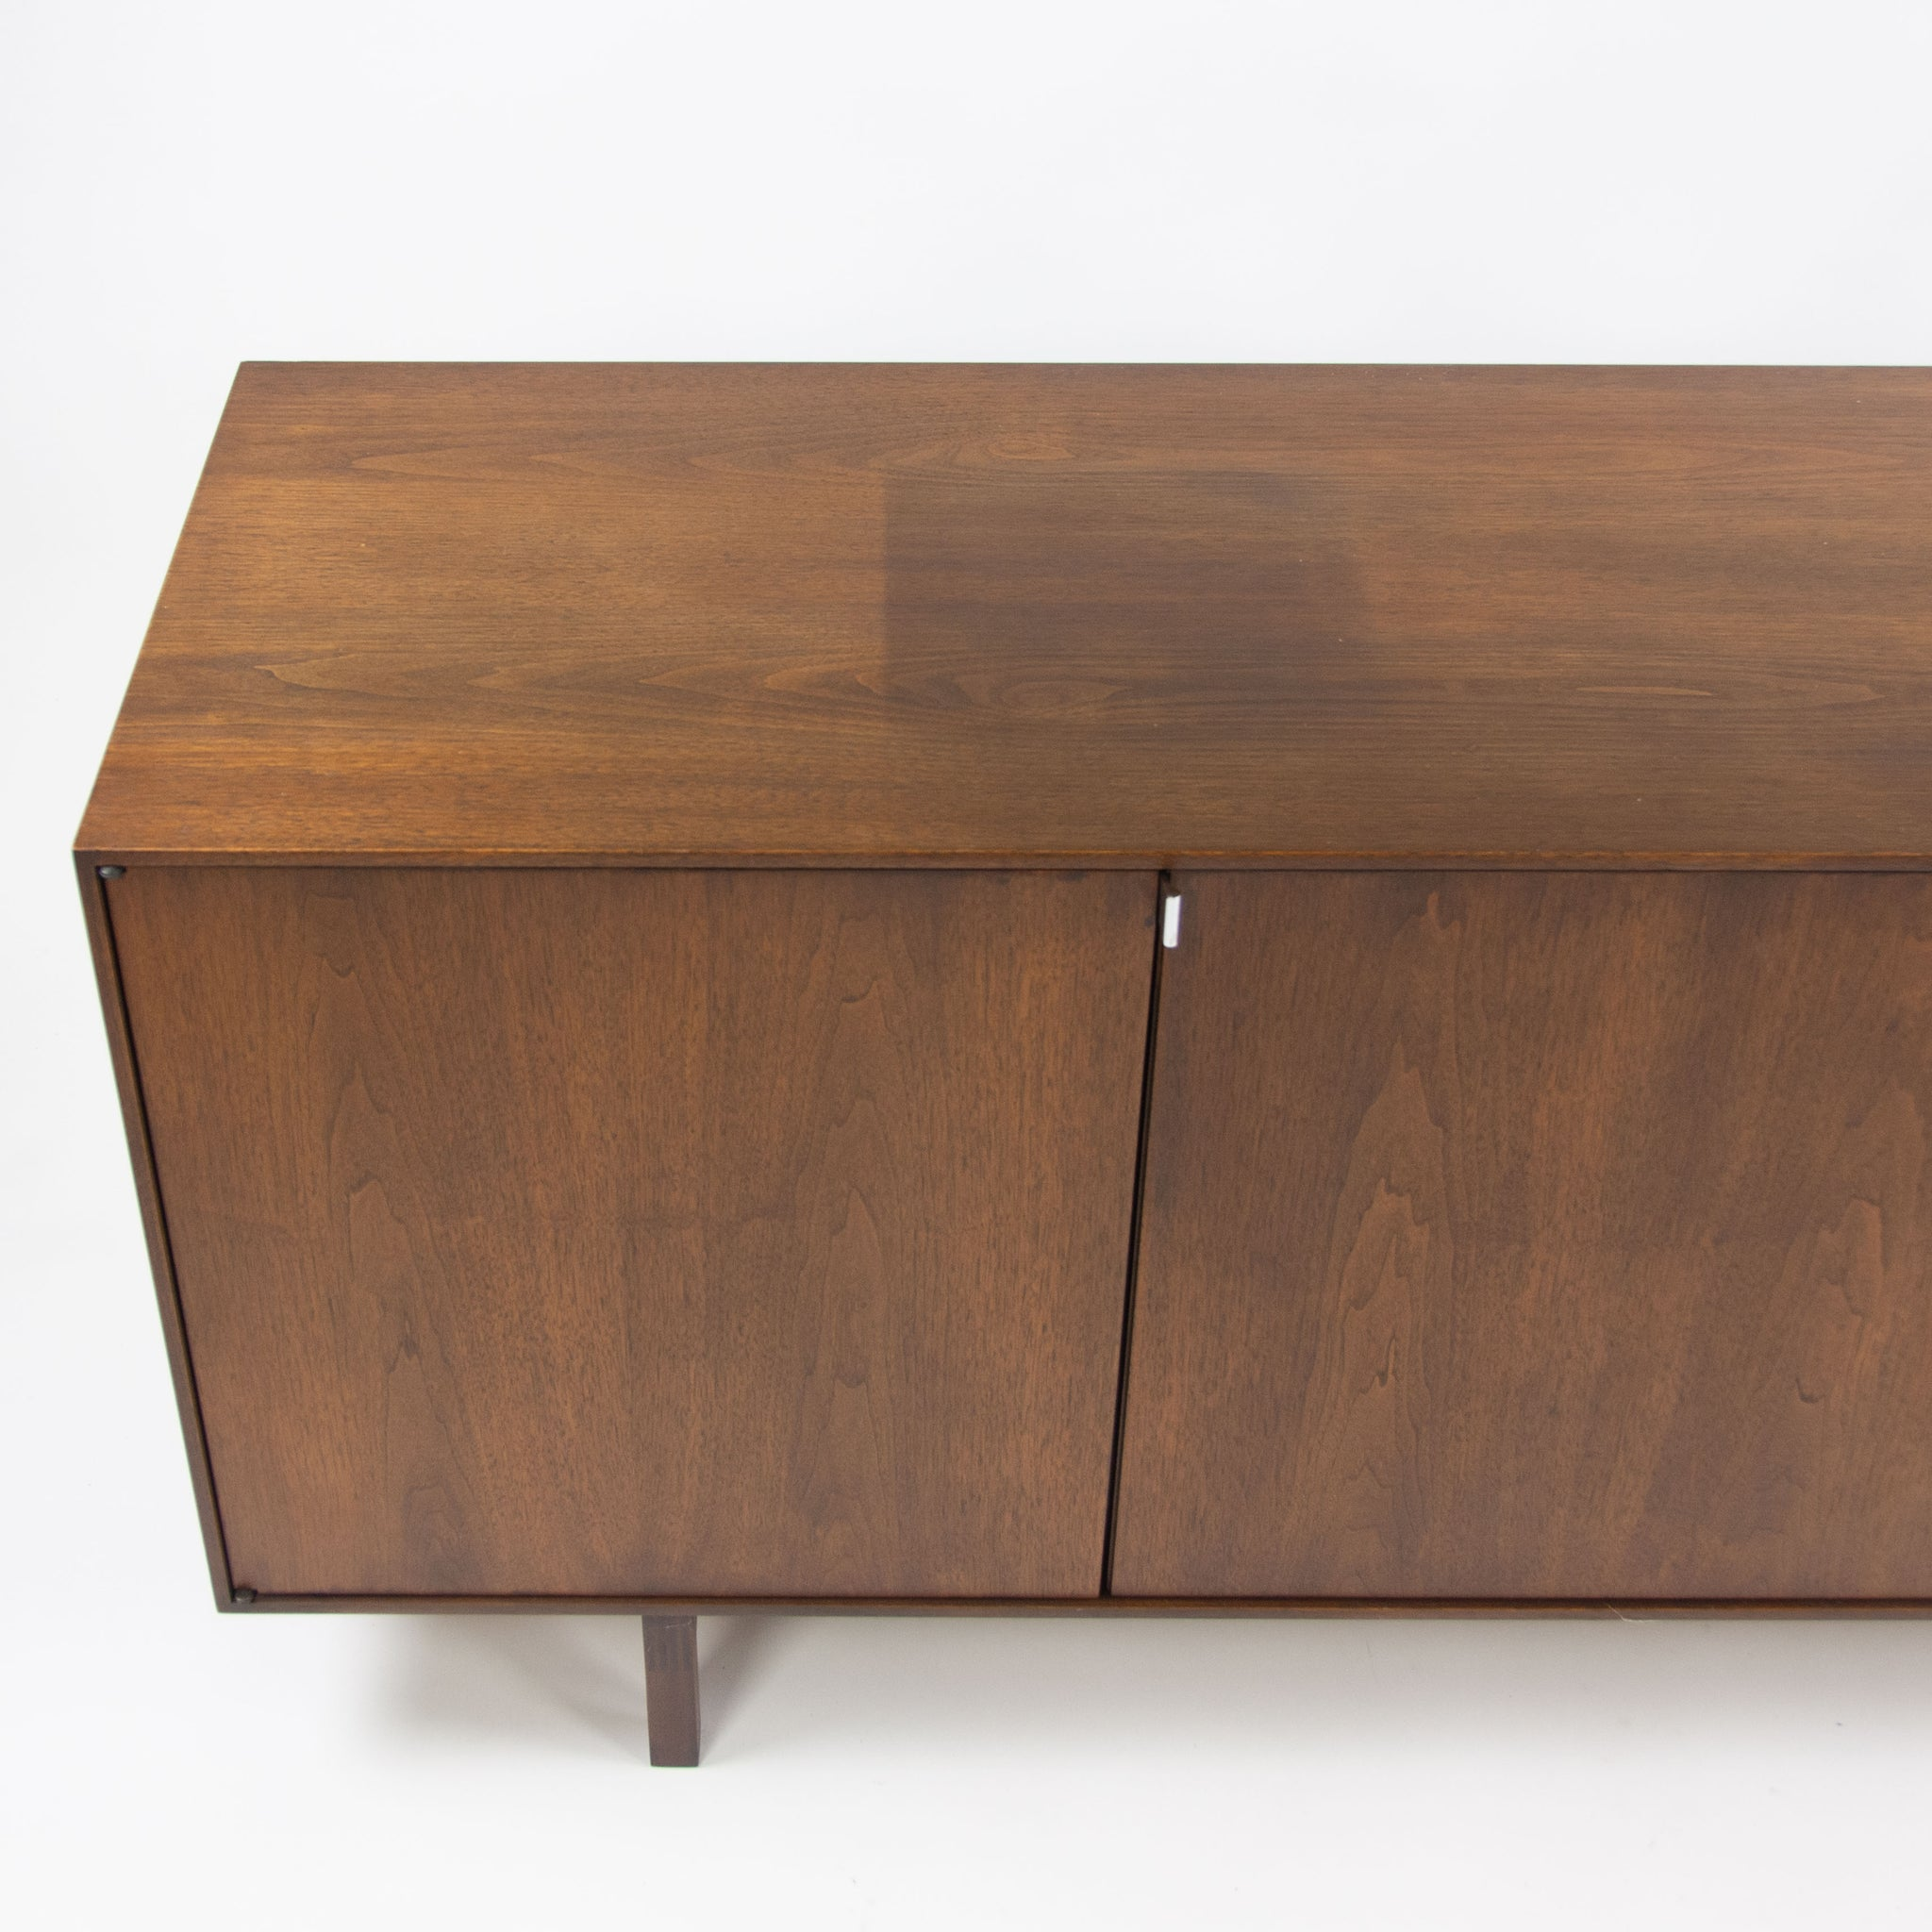 1960's Florence Knoll Museum Quality Walnut Credenza Cabinet Sideboard